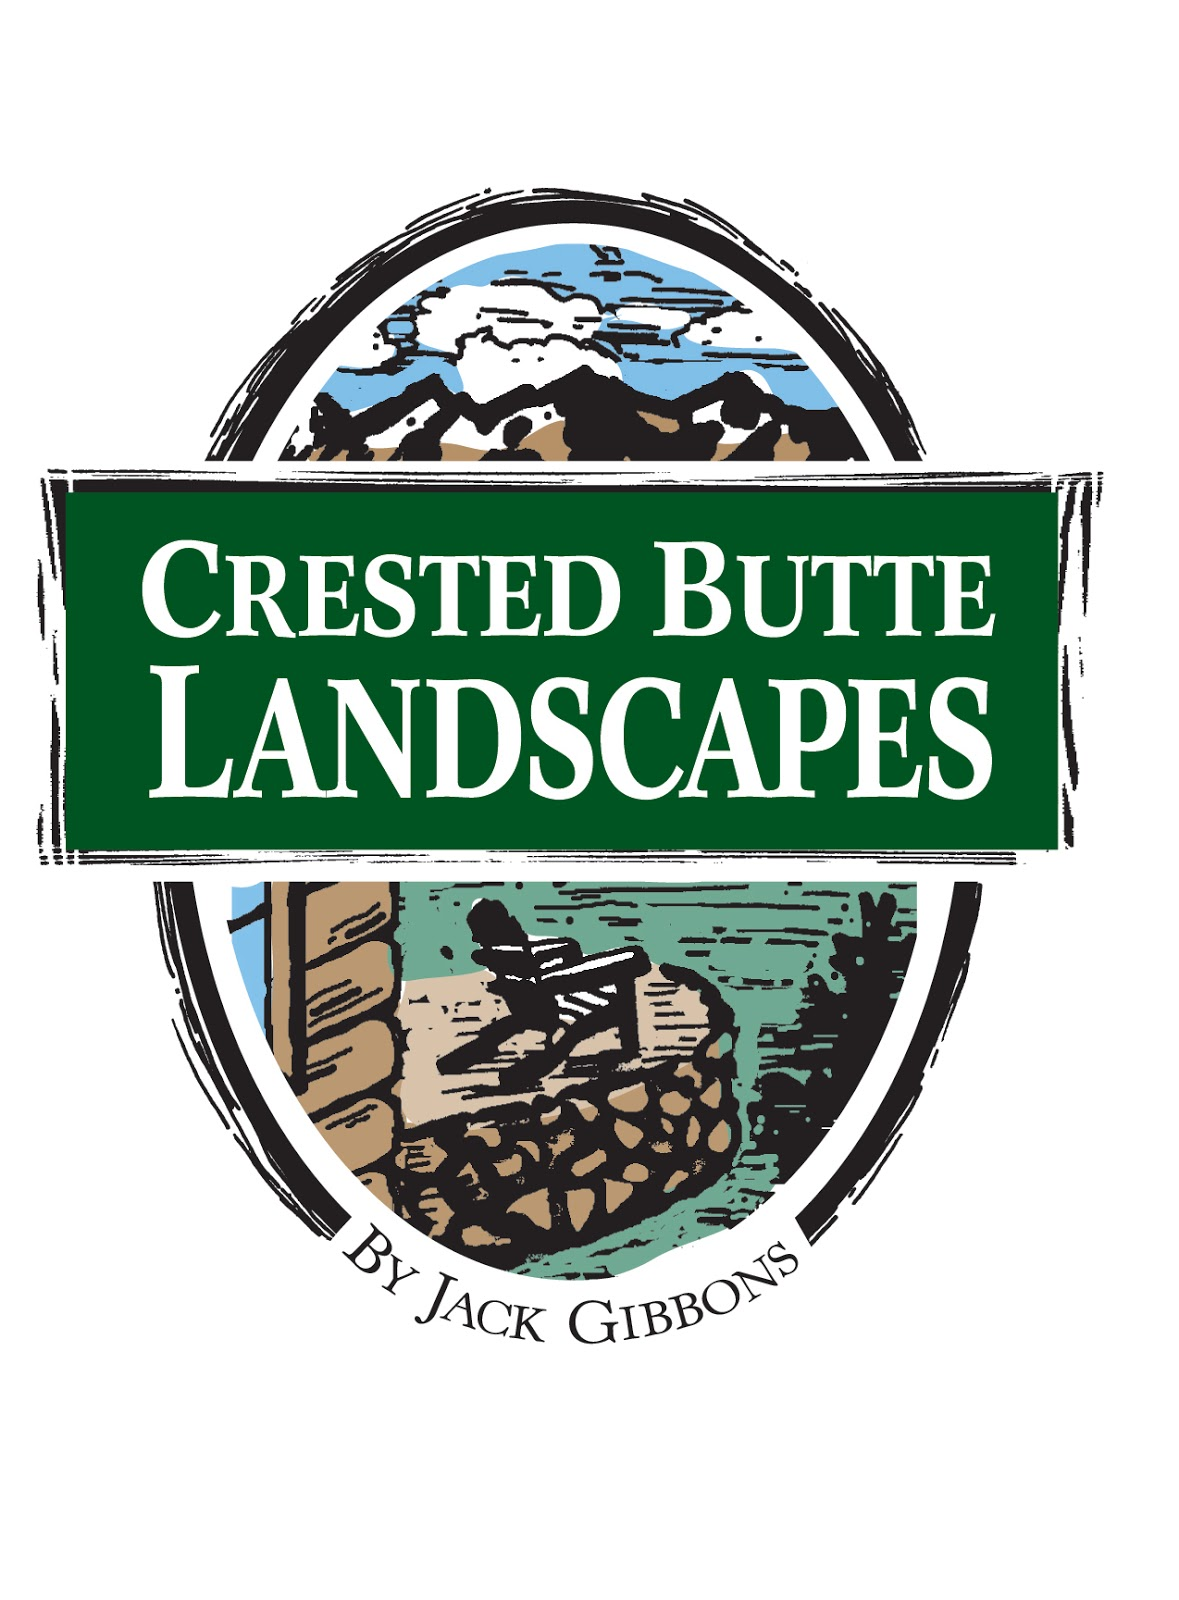 crested butte gay singles Crested butte's best 100% free gay dating site want to meet single gay men in crested butte, colorado mingle2's gay crested butte personals are the free and easy way to find other crested butte gay singles looking for dates, boyfriends, sex, or friends.